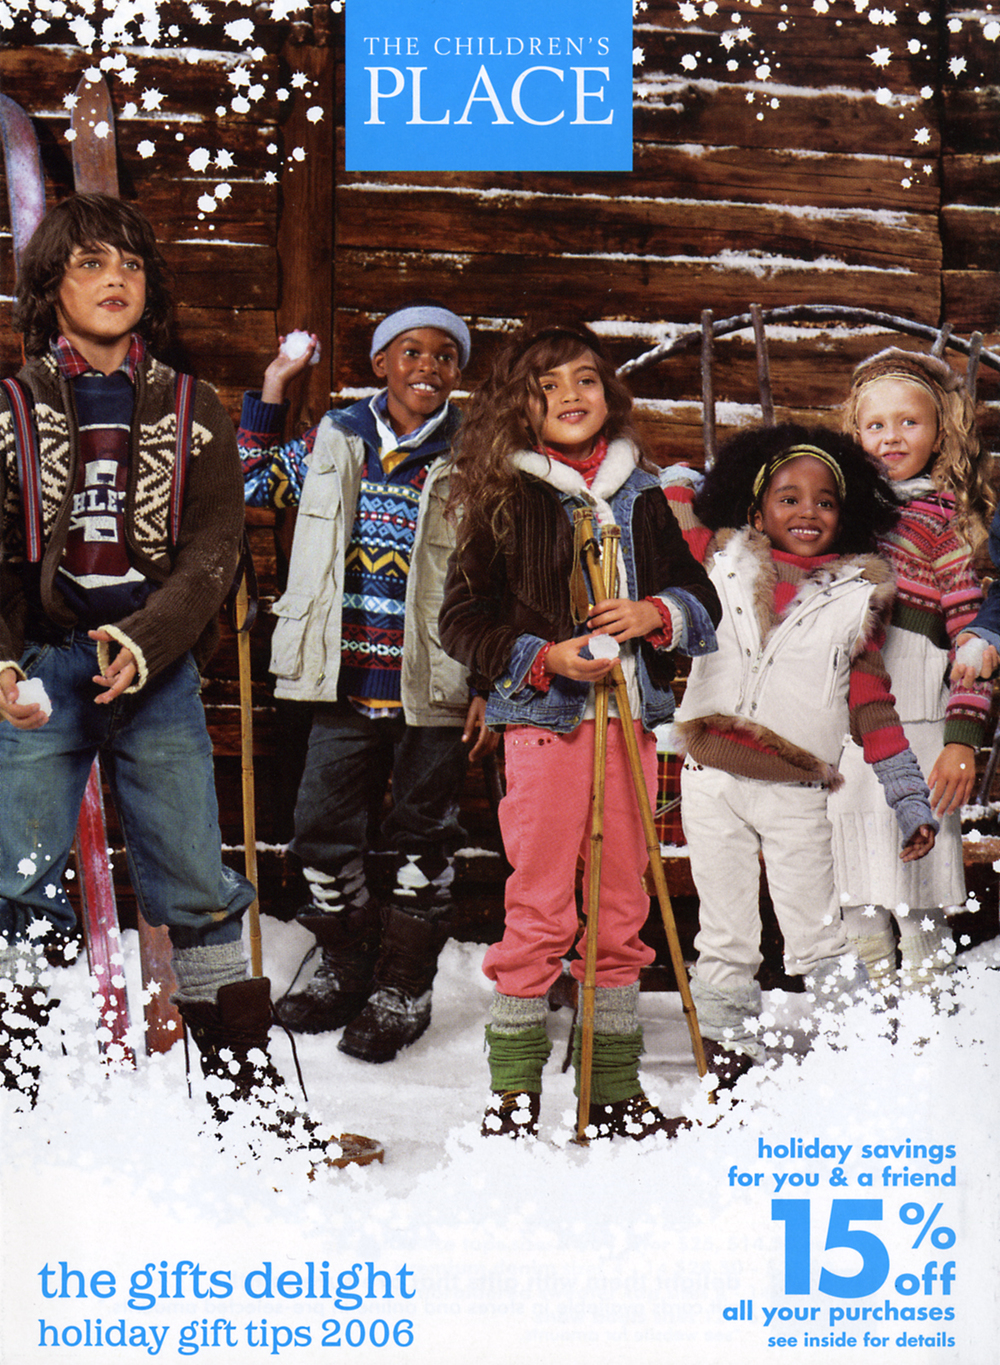 SC_ADVERTISING_CHILDRENSPLACE_03 copy.jpg